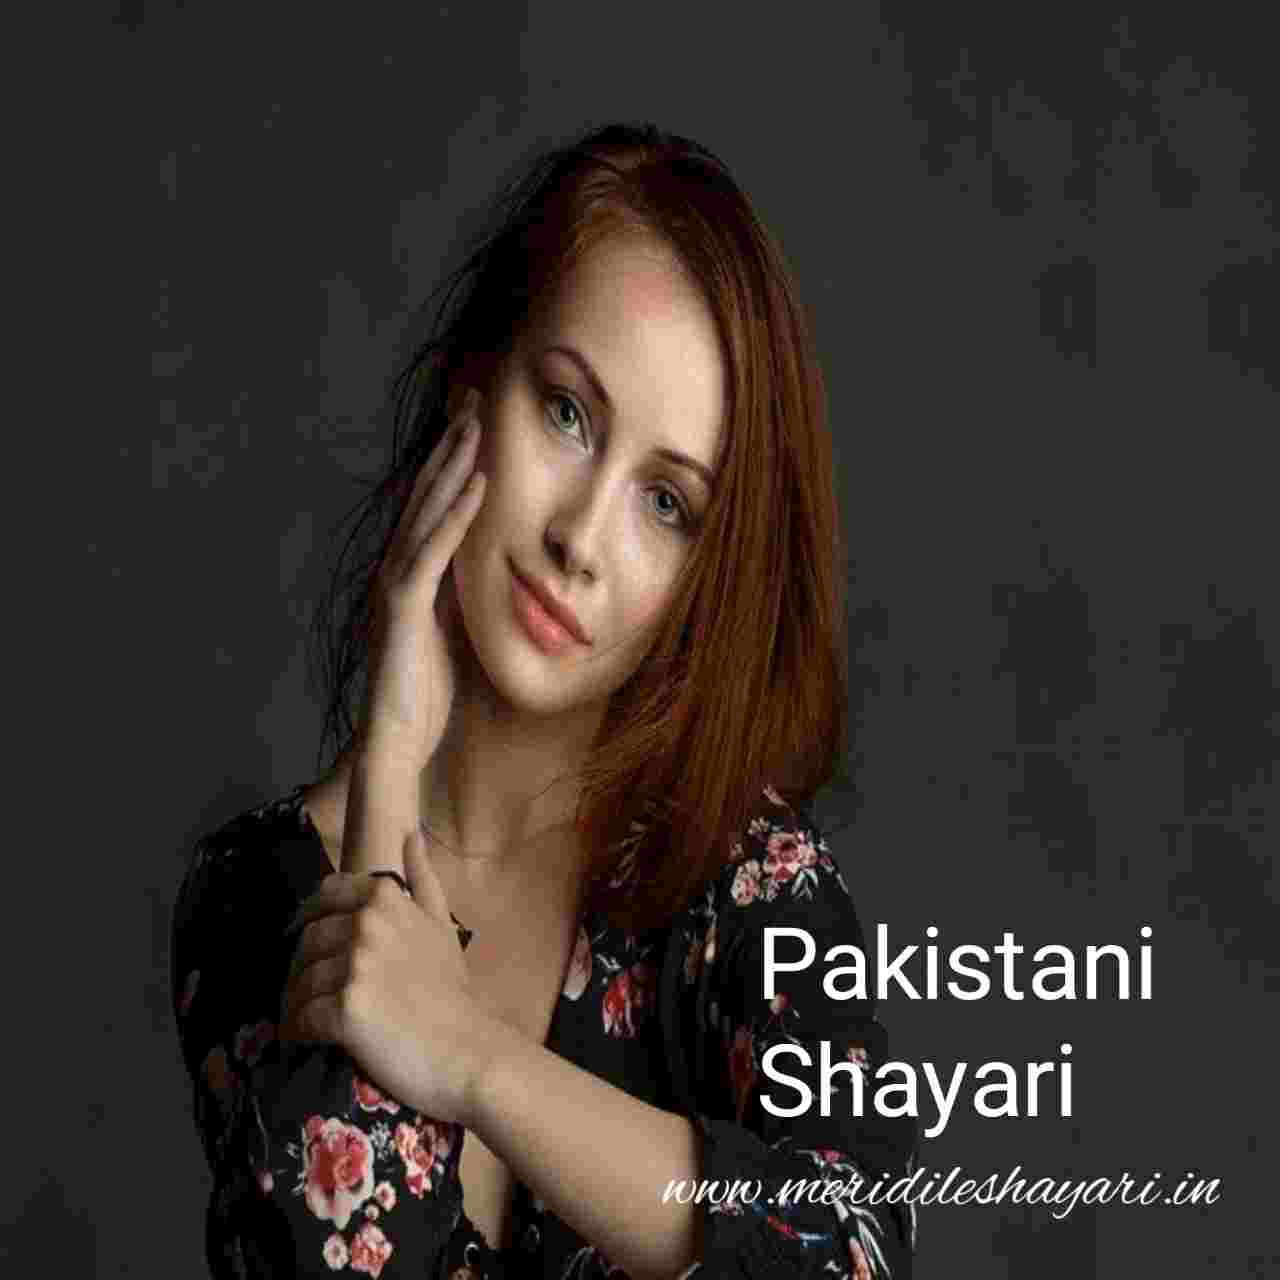 pakistani shayari, pakistan shayari hindi, pakistani shayari in urdu, pakistani shayari urdu, pakistan shayari urdu, pakistani shayari in hindi, pakistani shayari in english, pakistani sad shayari 2 line, pakistani 2 line shayari, jazbati shayari urdu, pakistani shayari hindi mai, pakistani shayari in punjabi, pakistani shayari 2 lines, urdu mohabbat shayari in hindi, urdu shayari hindi shayari, urdu ishq shayari in hindi.